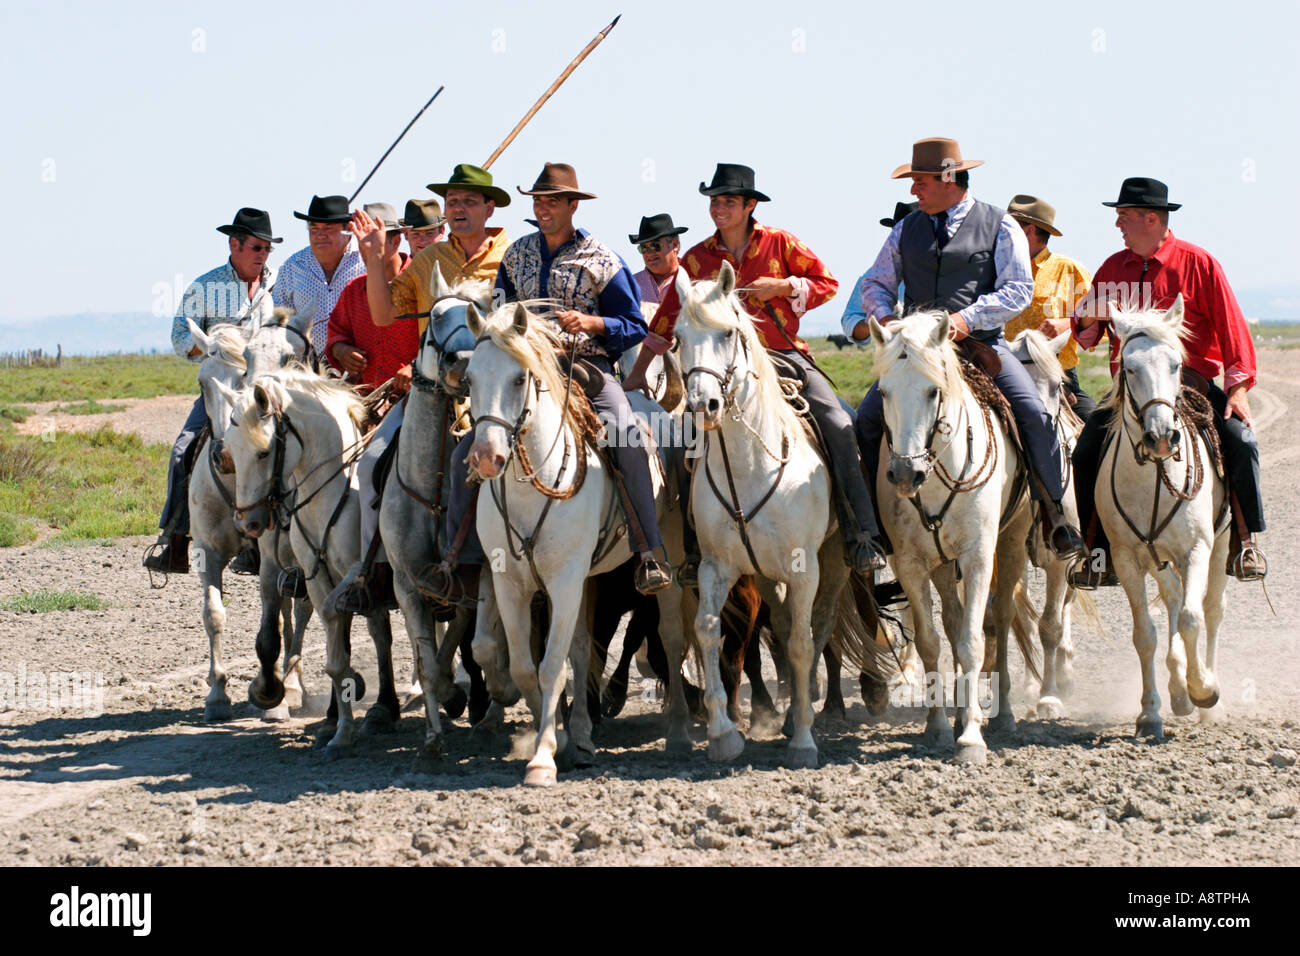 Guardians in Camargue France Stock Photo  6957209 - Alamy 1f2c2a9daac